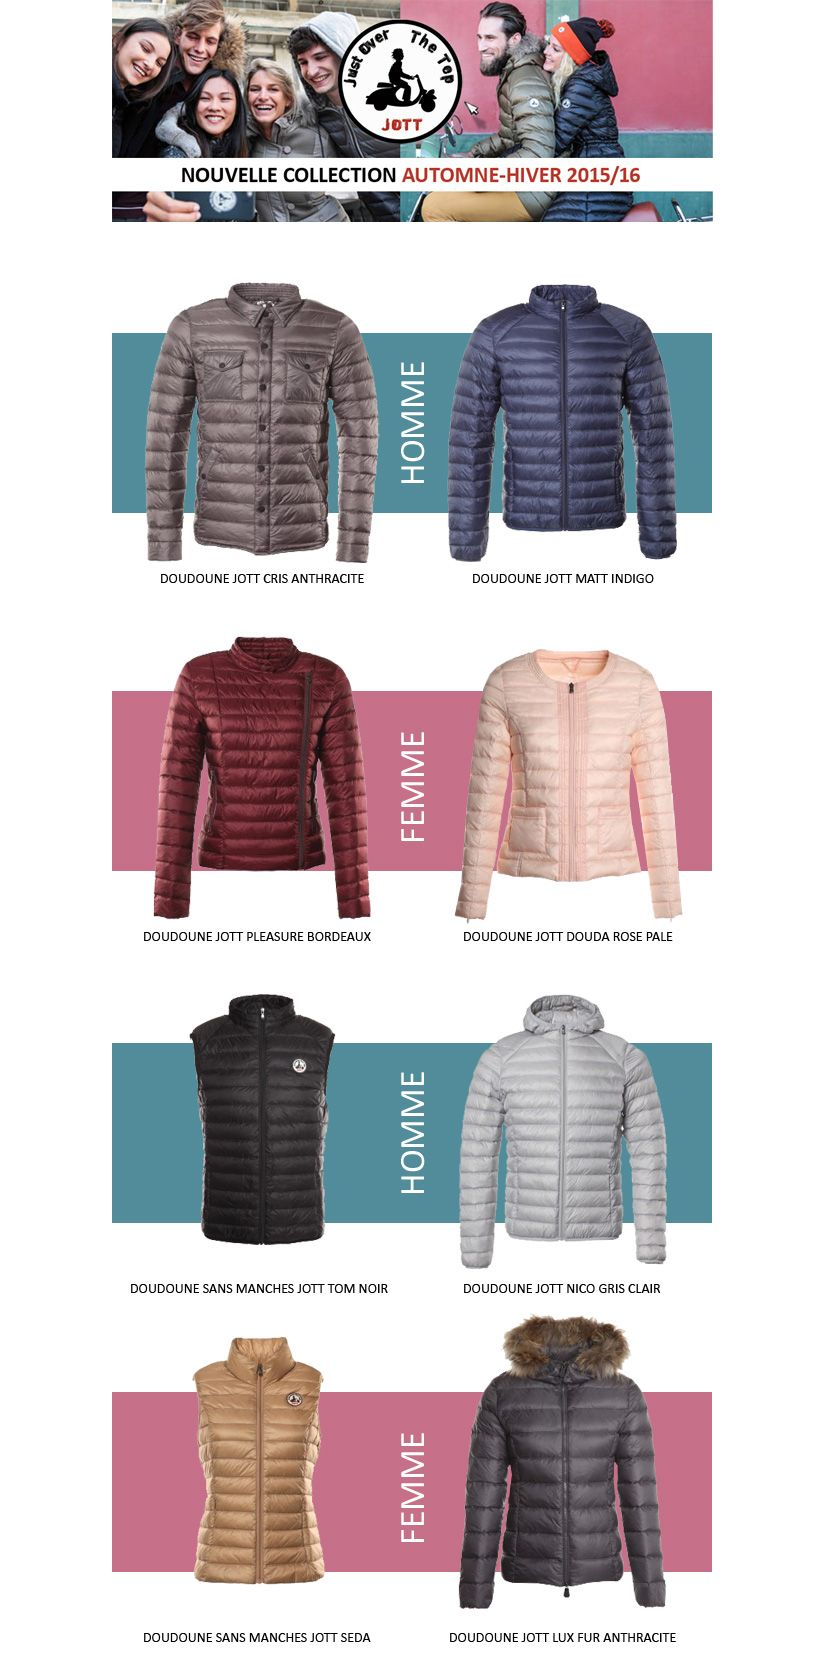 bff91a1826d00 Pin by ESB on Oh Those Beautiful Girls in Their Down Jackets! in ...